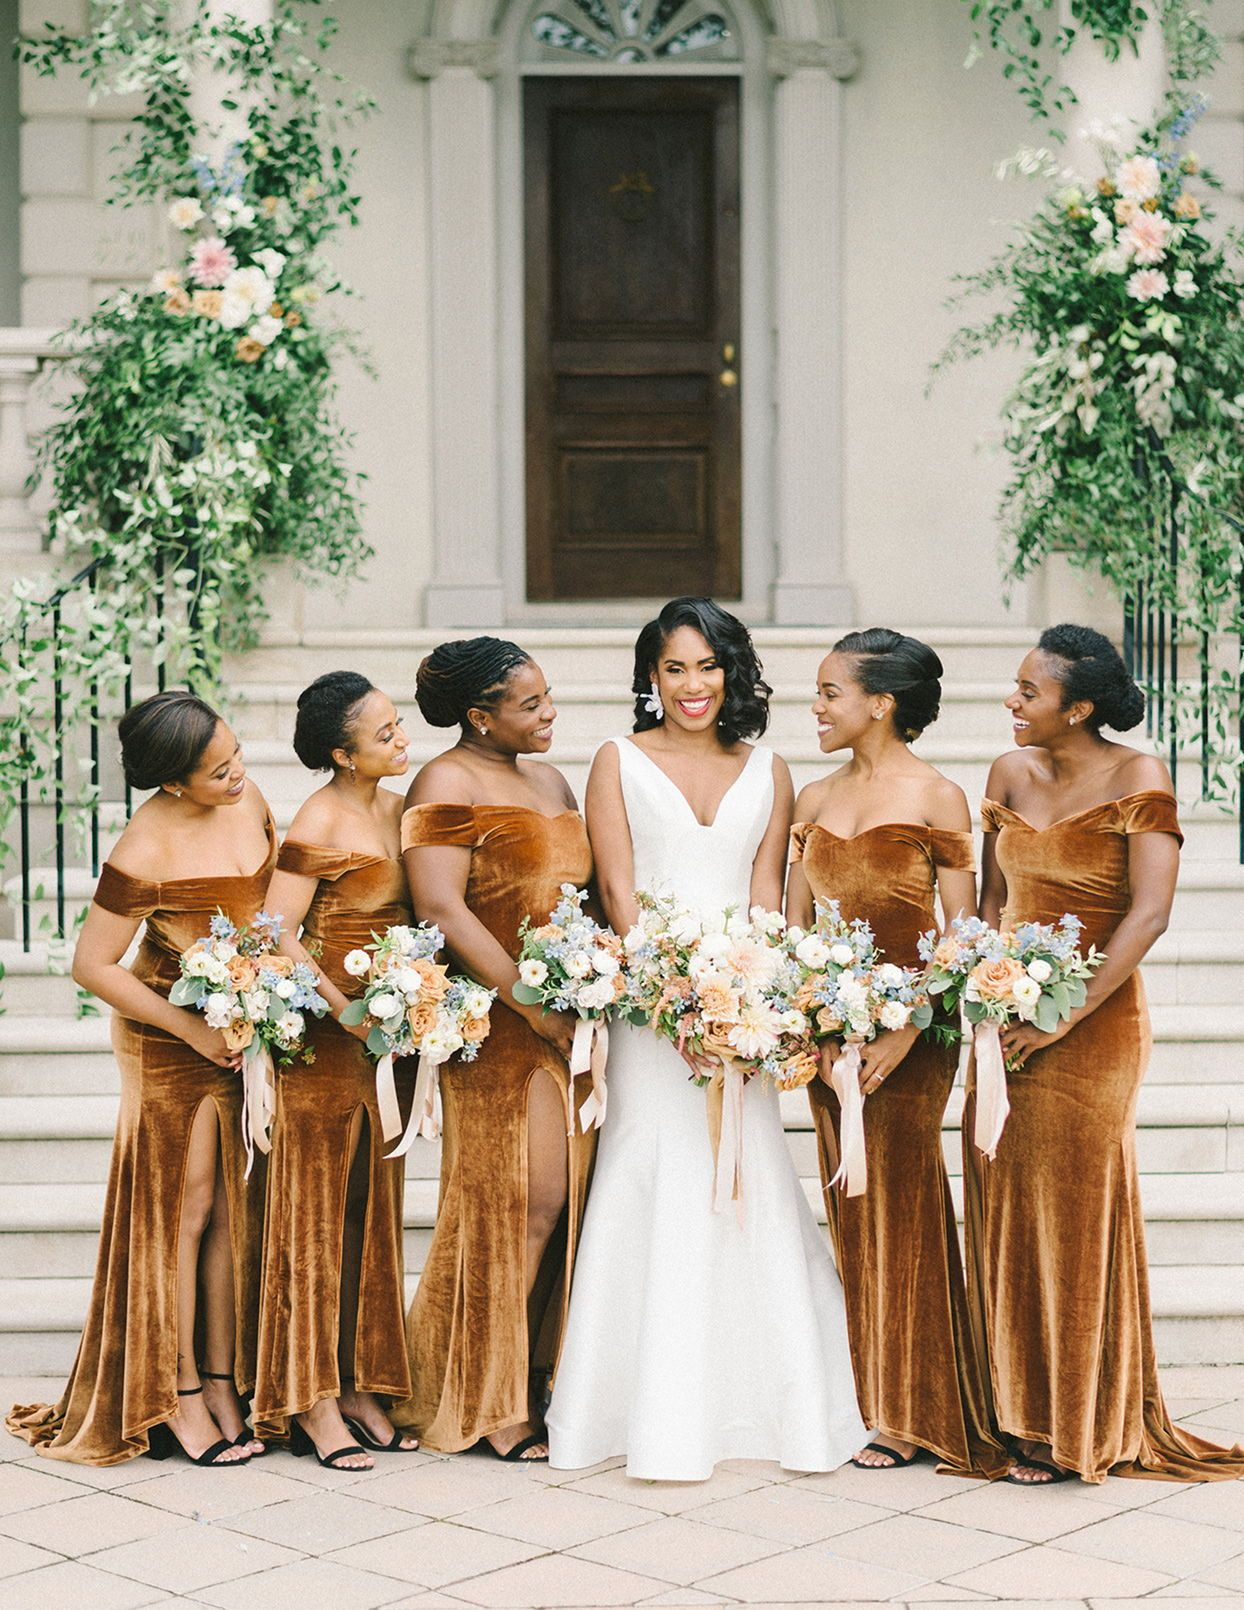 This Backyard Wedding Was Full Of Golds And Blues Perfect For A Fall Or Winter Wedding With Velvet B Bridesmaid Velvet Bridesmaid Dresses Velvet Wedding Dress [ 1610 x 1244 Pixel ]